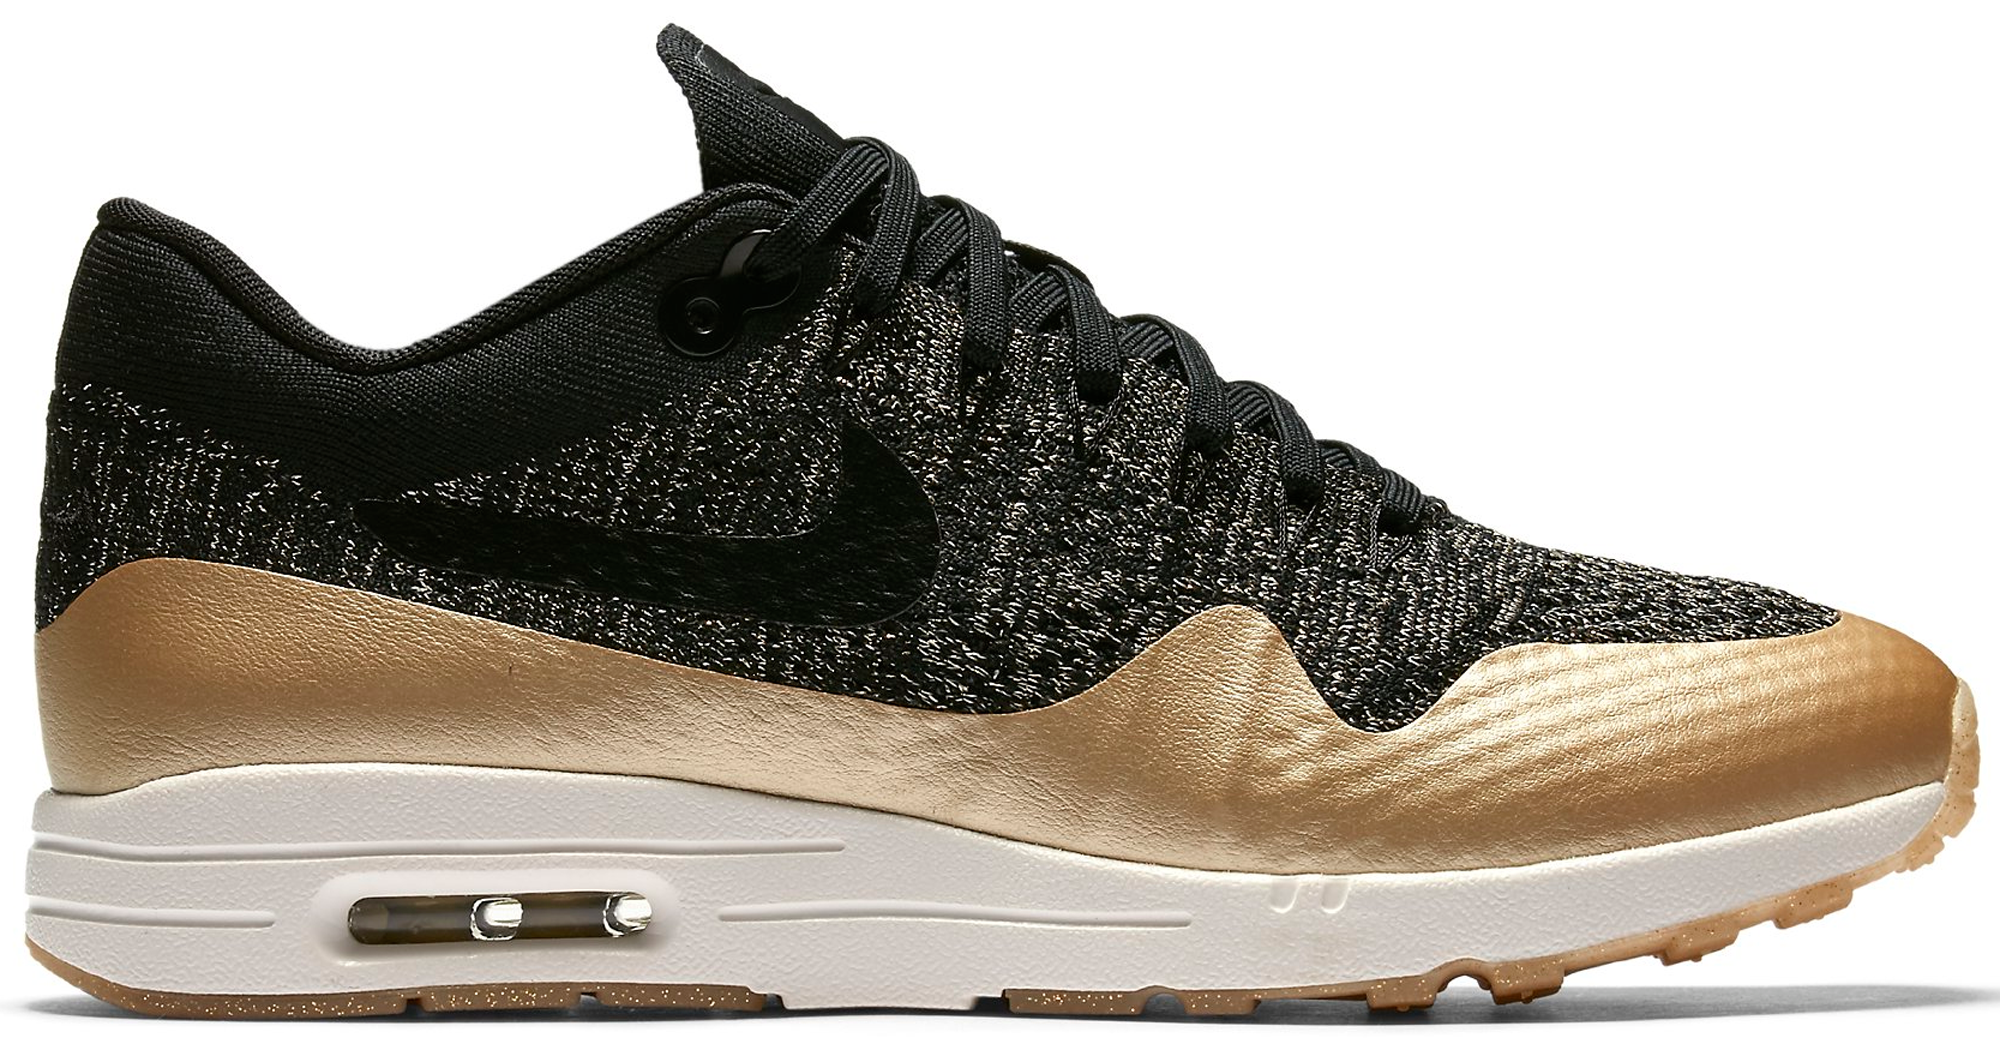 1 w 0 Max Metallic Stockx 2 Gold Air Nike News Flyknit Ultra gFzEEq